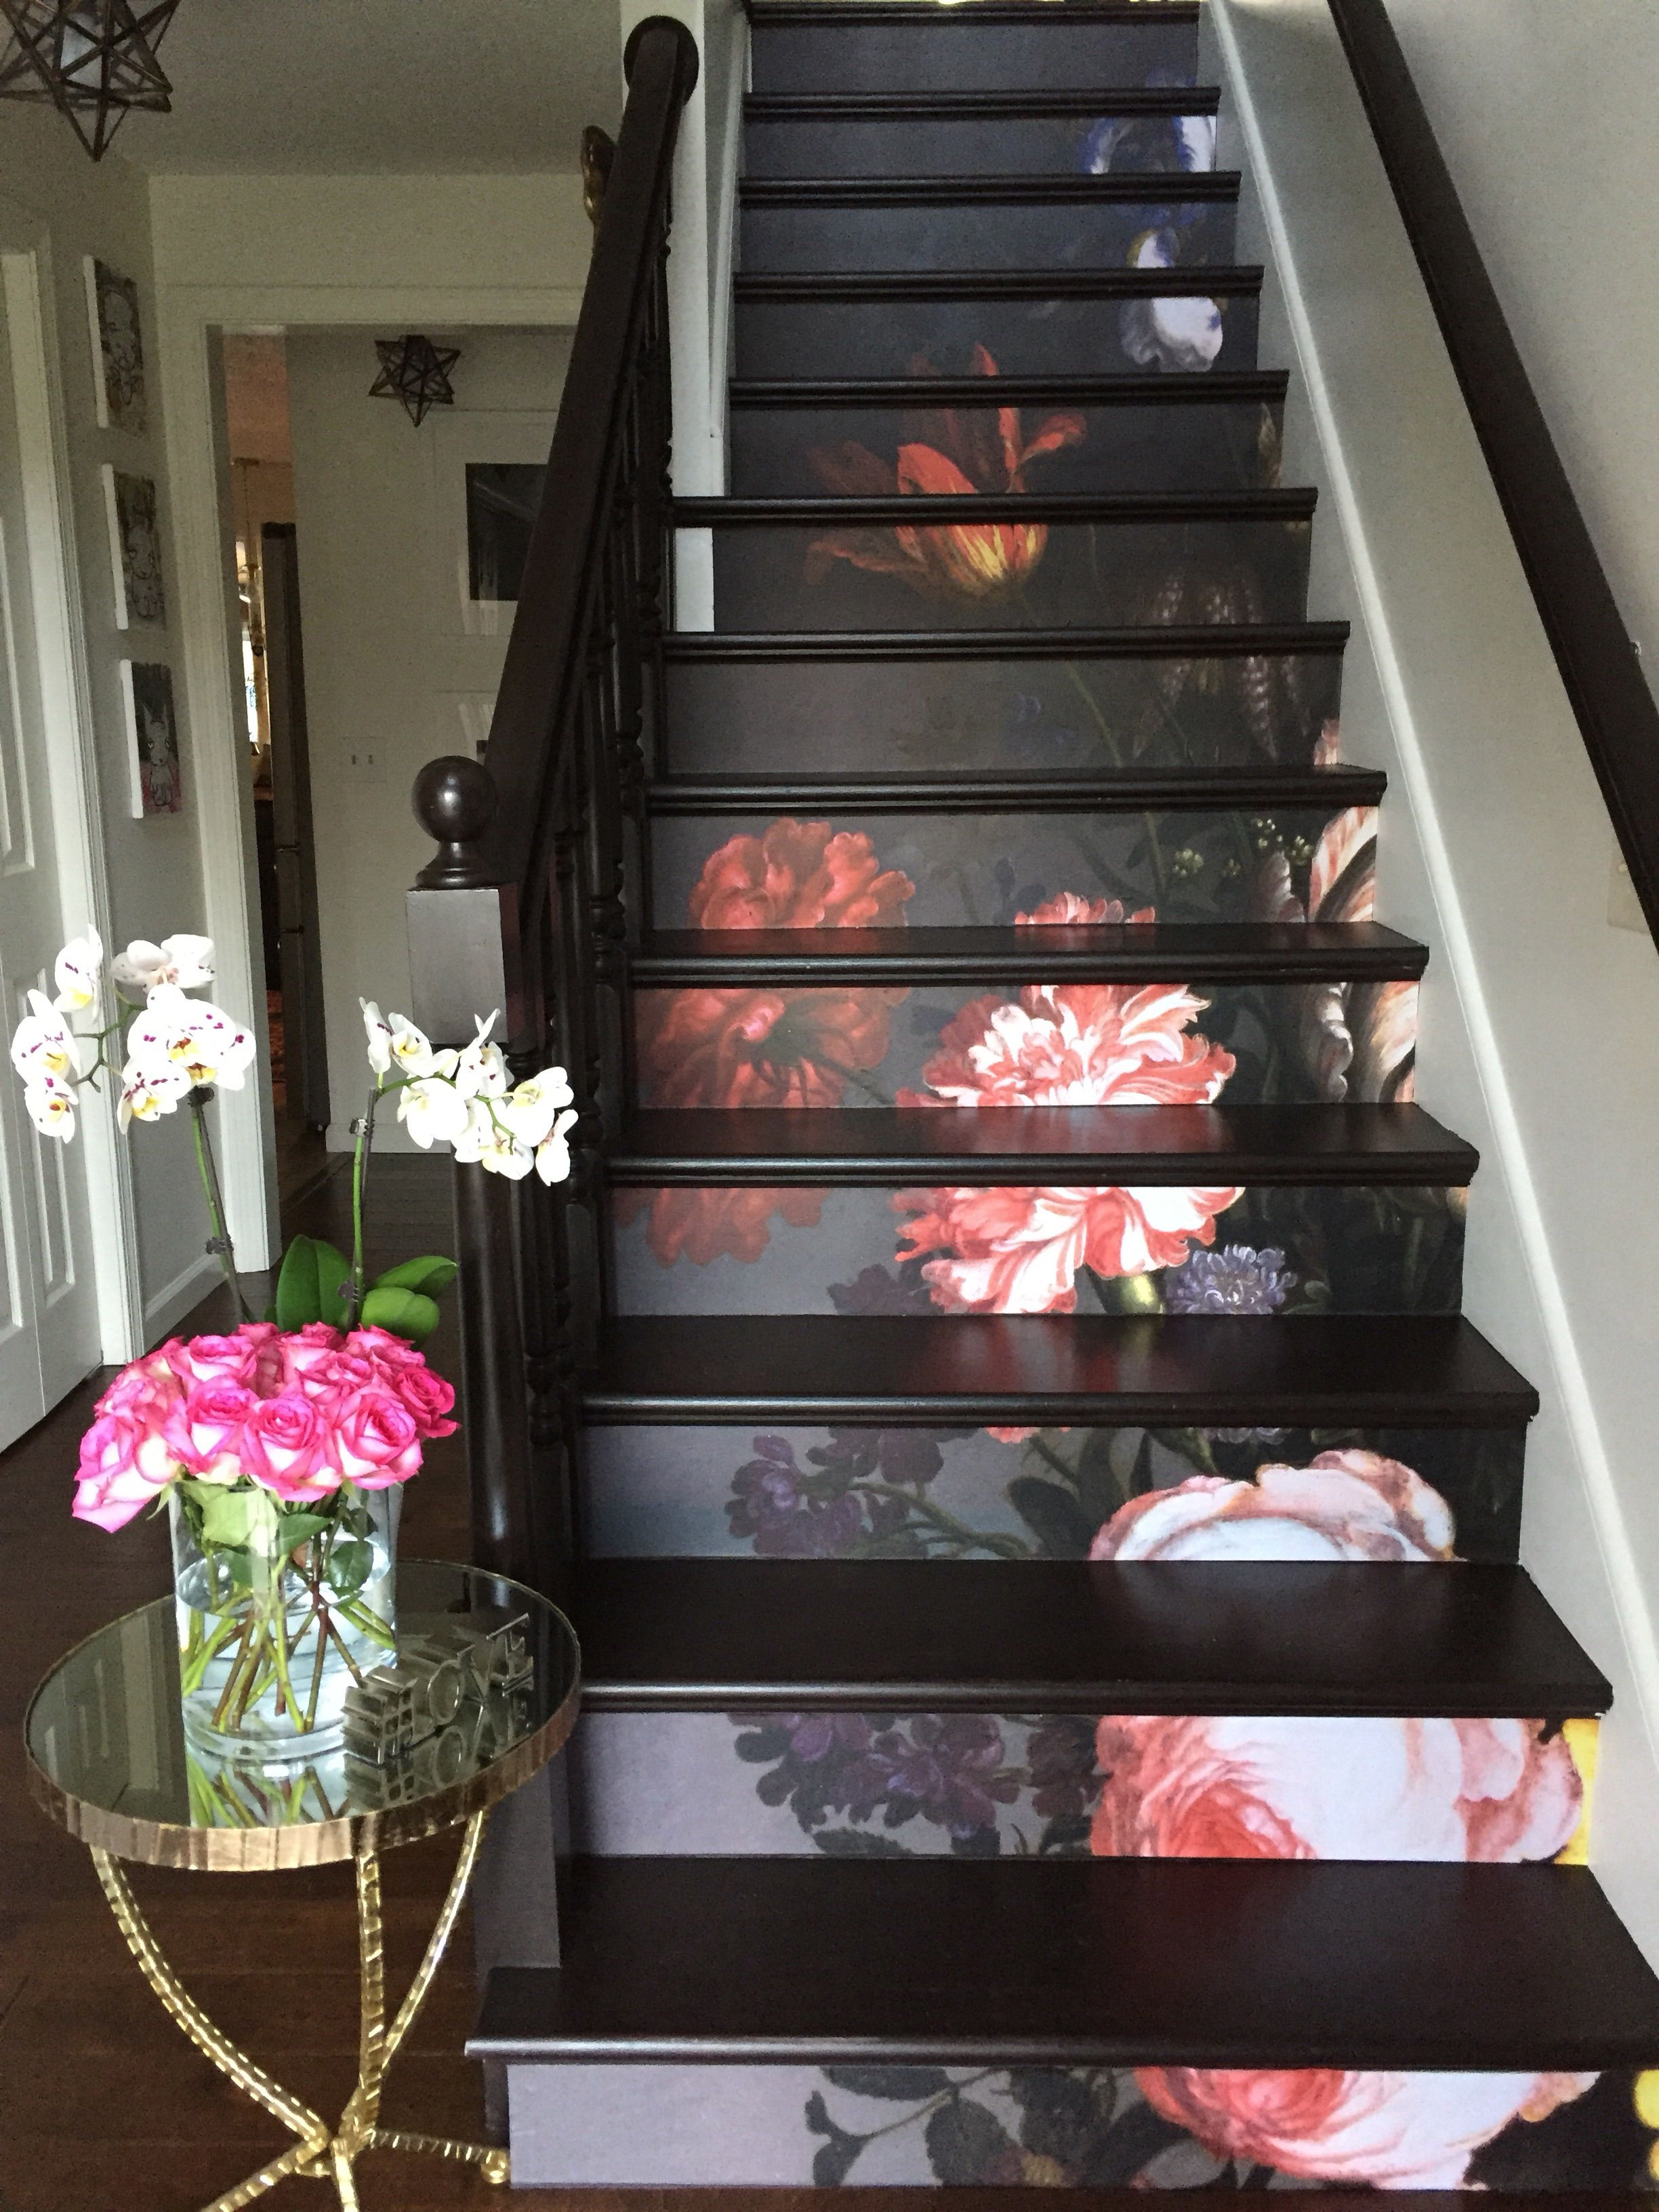 10 step stair riser decal vintage painted flowers stair sticker floral removable stair riser decor strip peel and stick stair riser stairshacks stairs